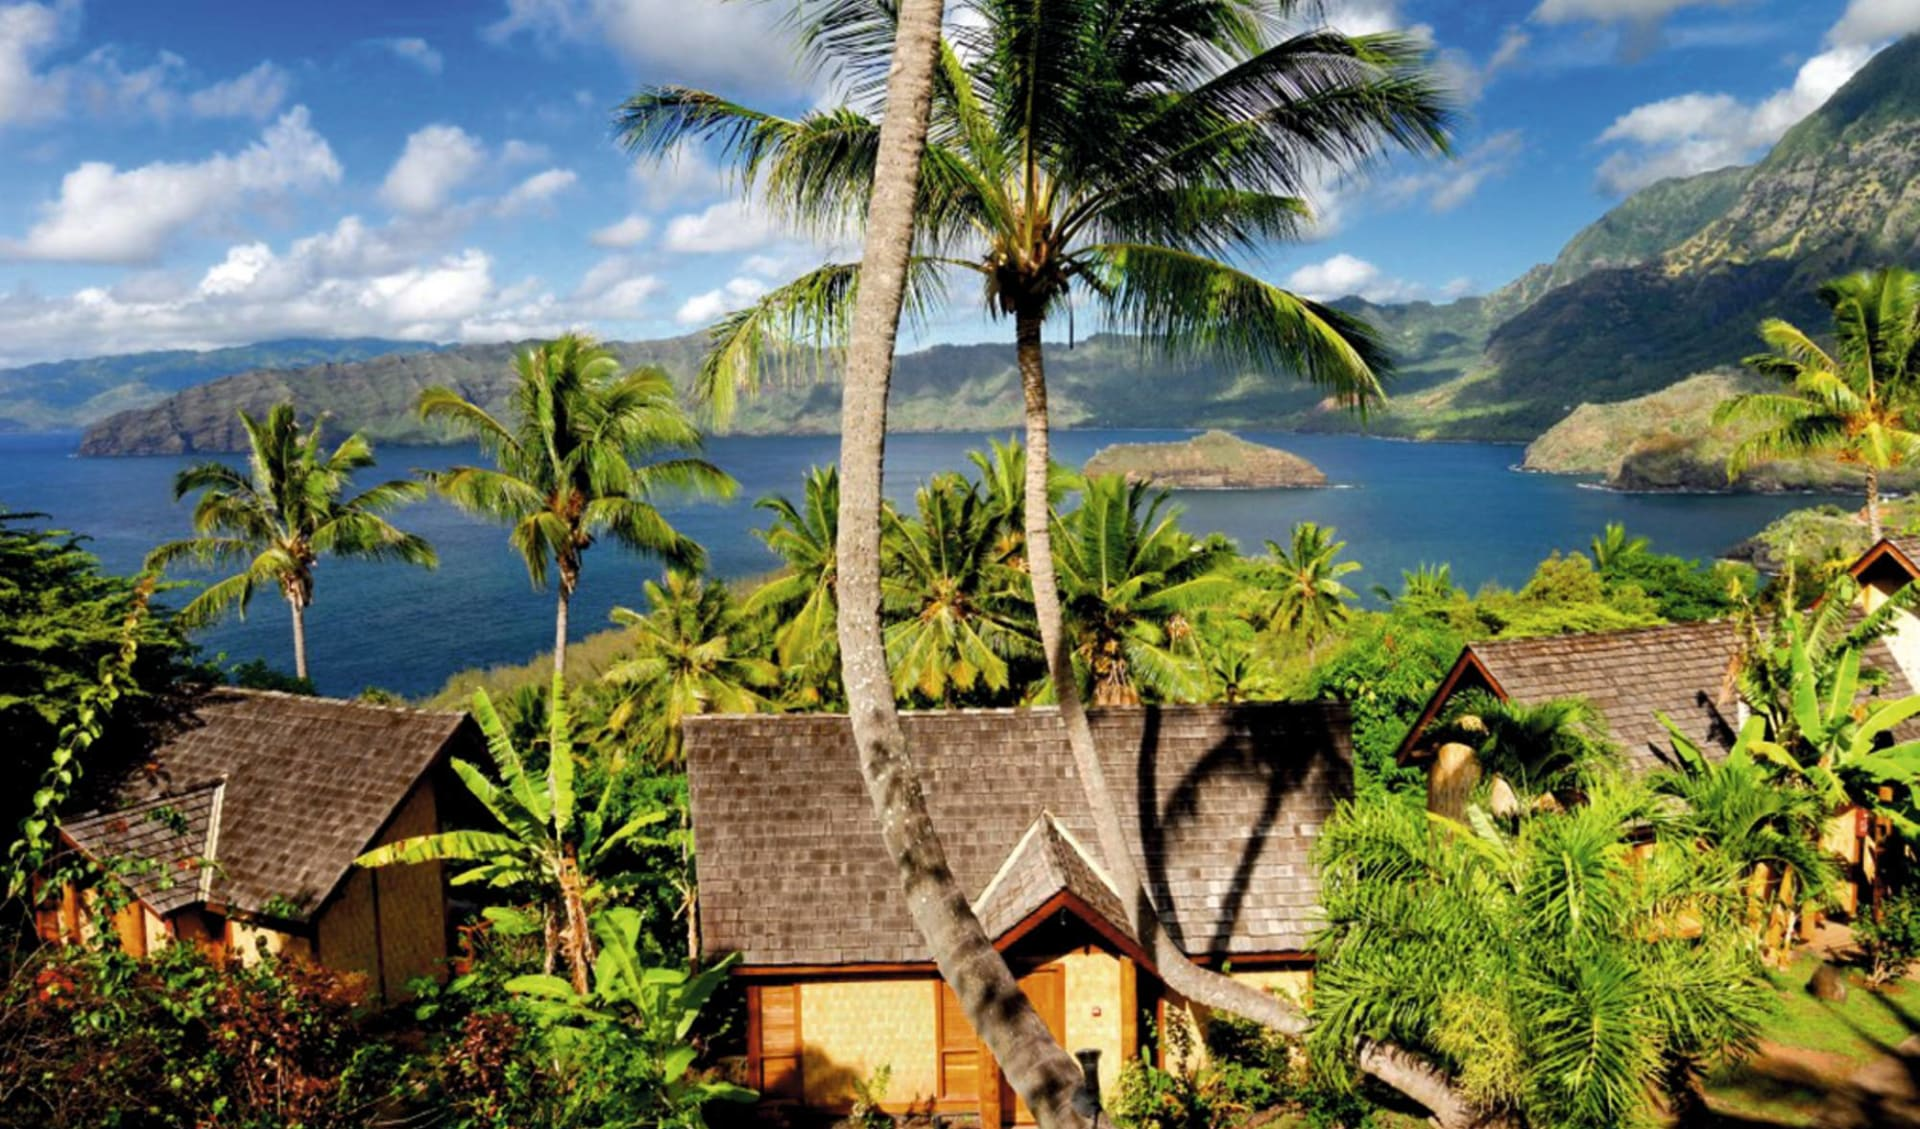 Marquesas Discovery ab Papeete: facilities: Hanakee Lodge - Blick auf Lodges und das Meer